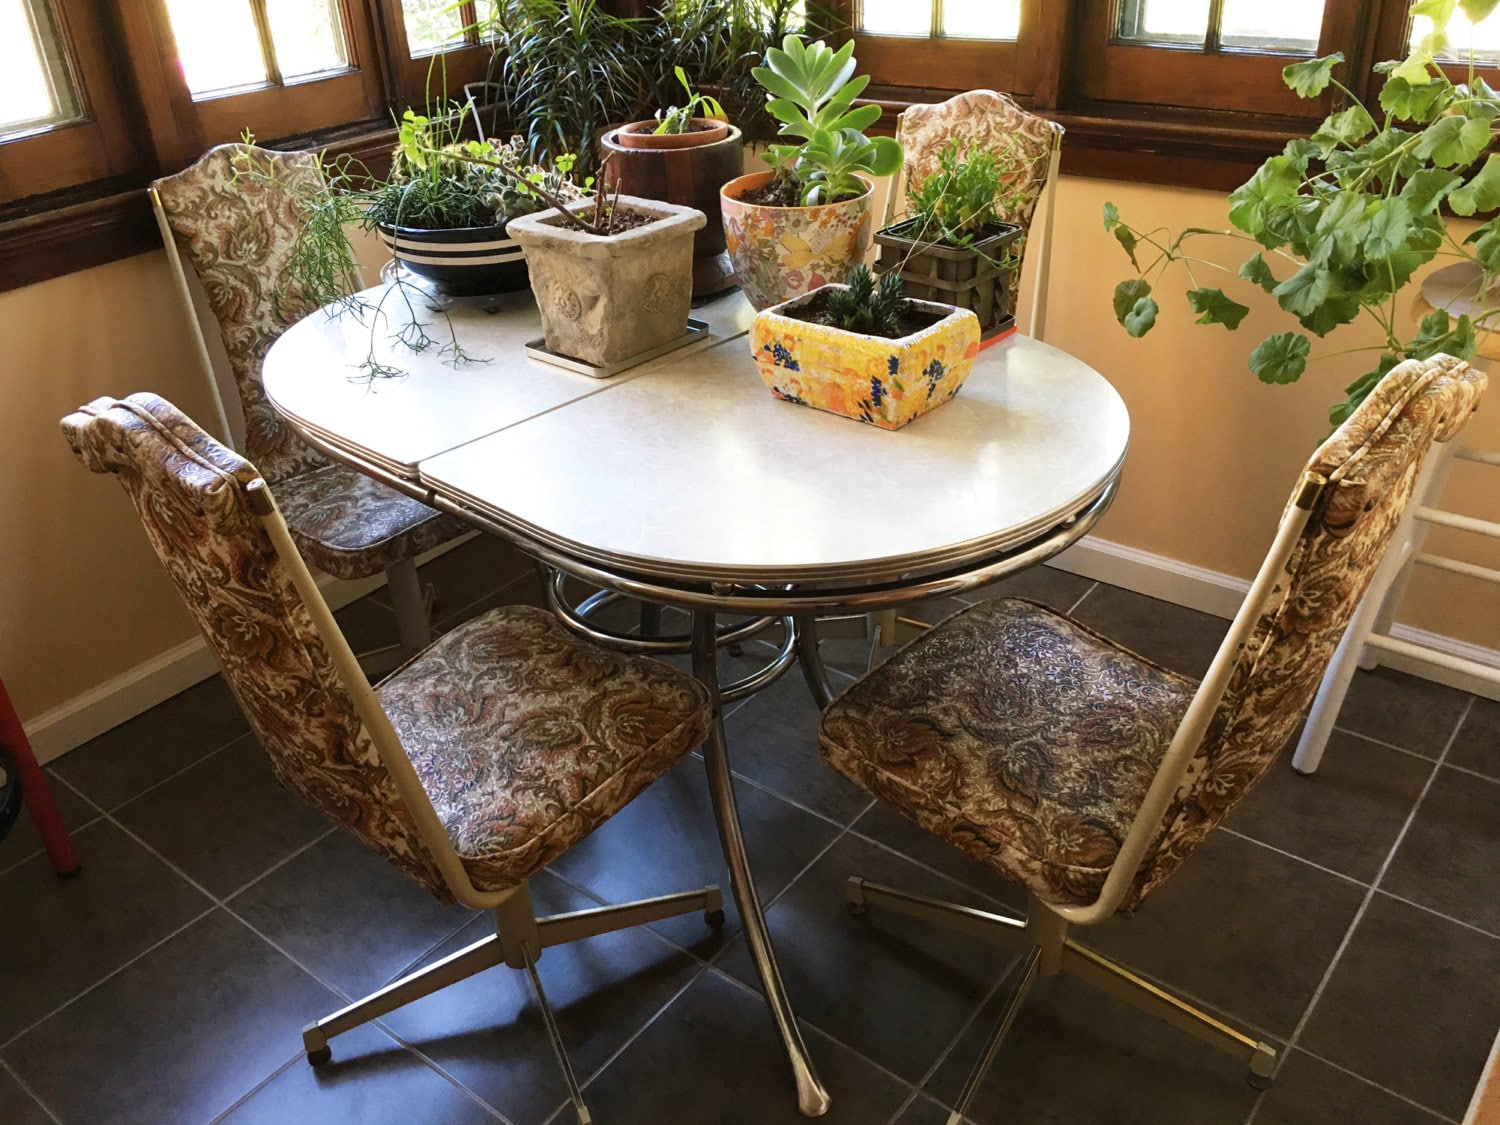 4 kitchen chairs dining chairs retro chairs mid century chair